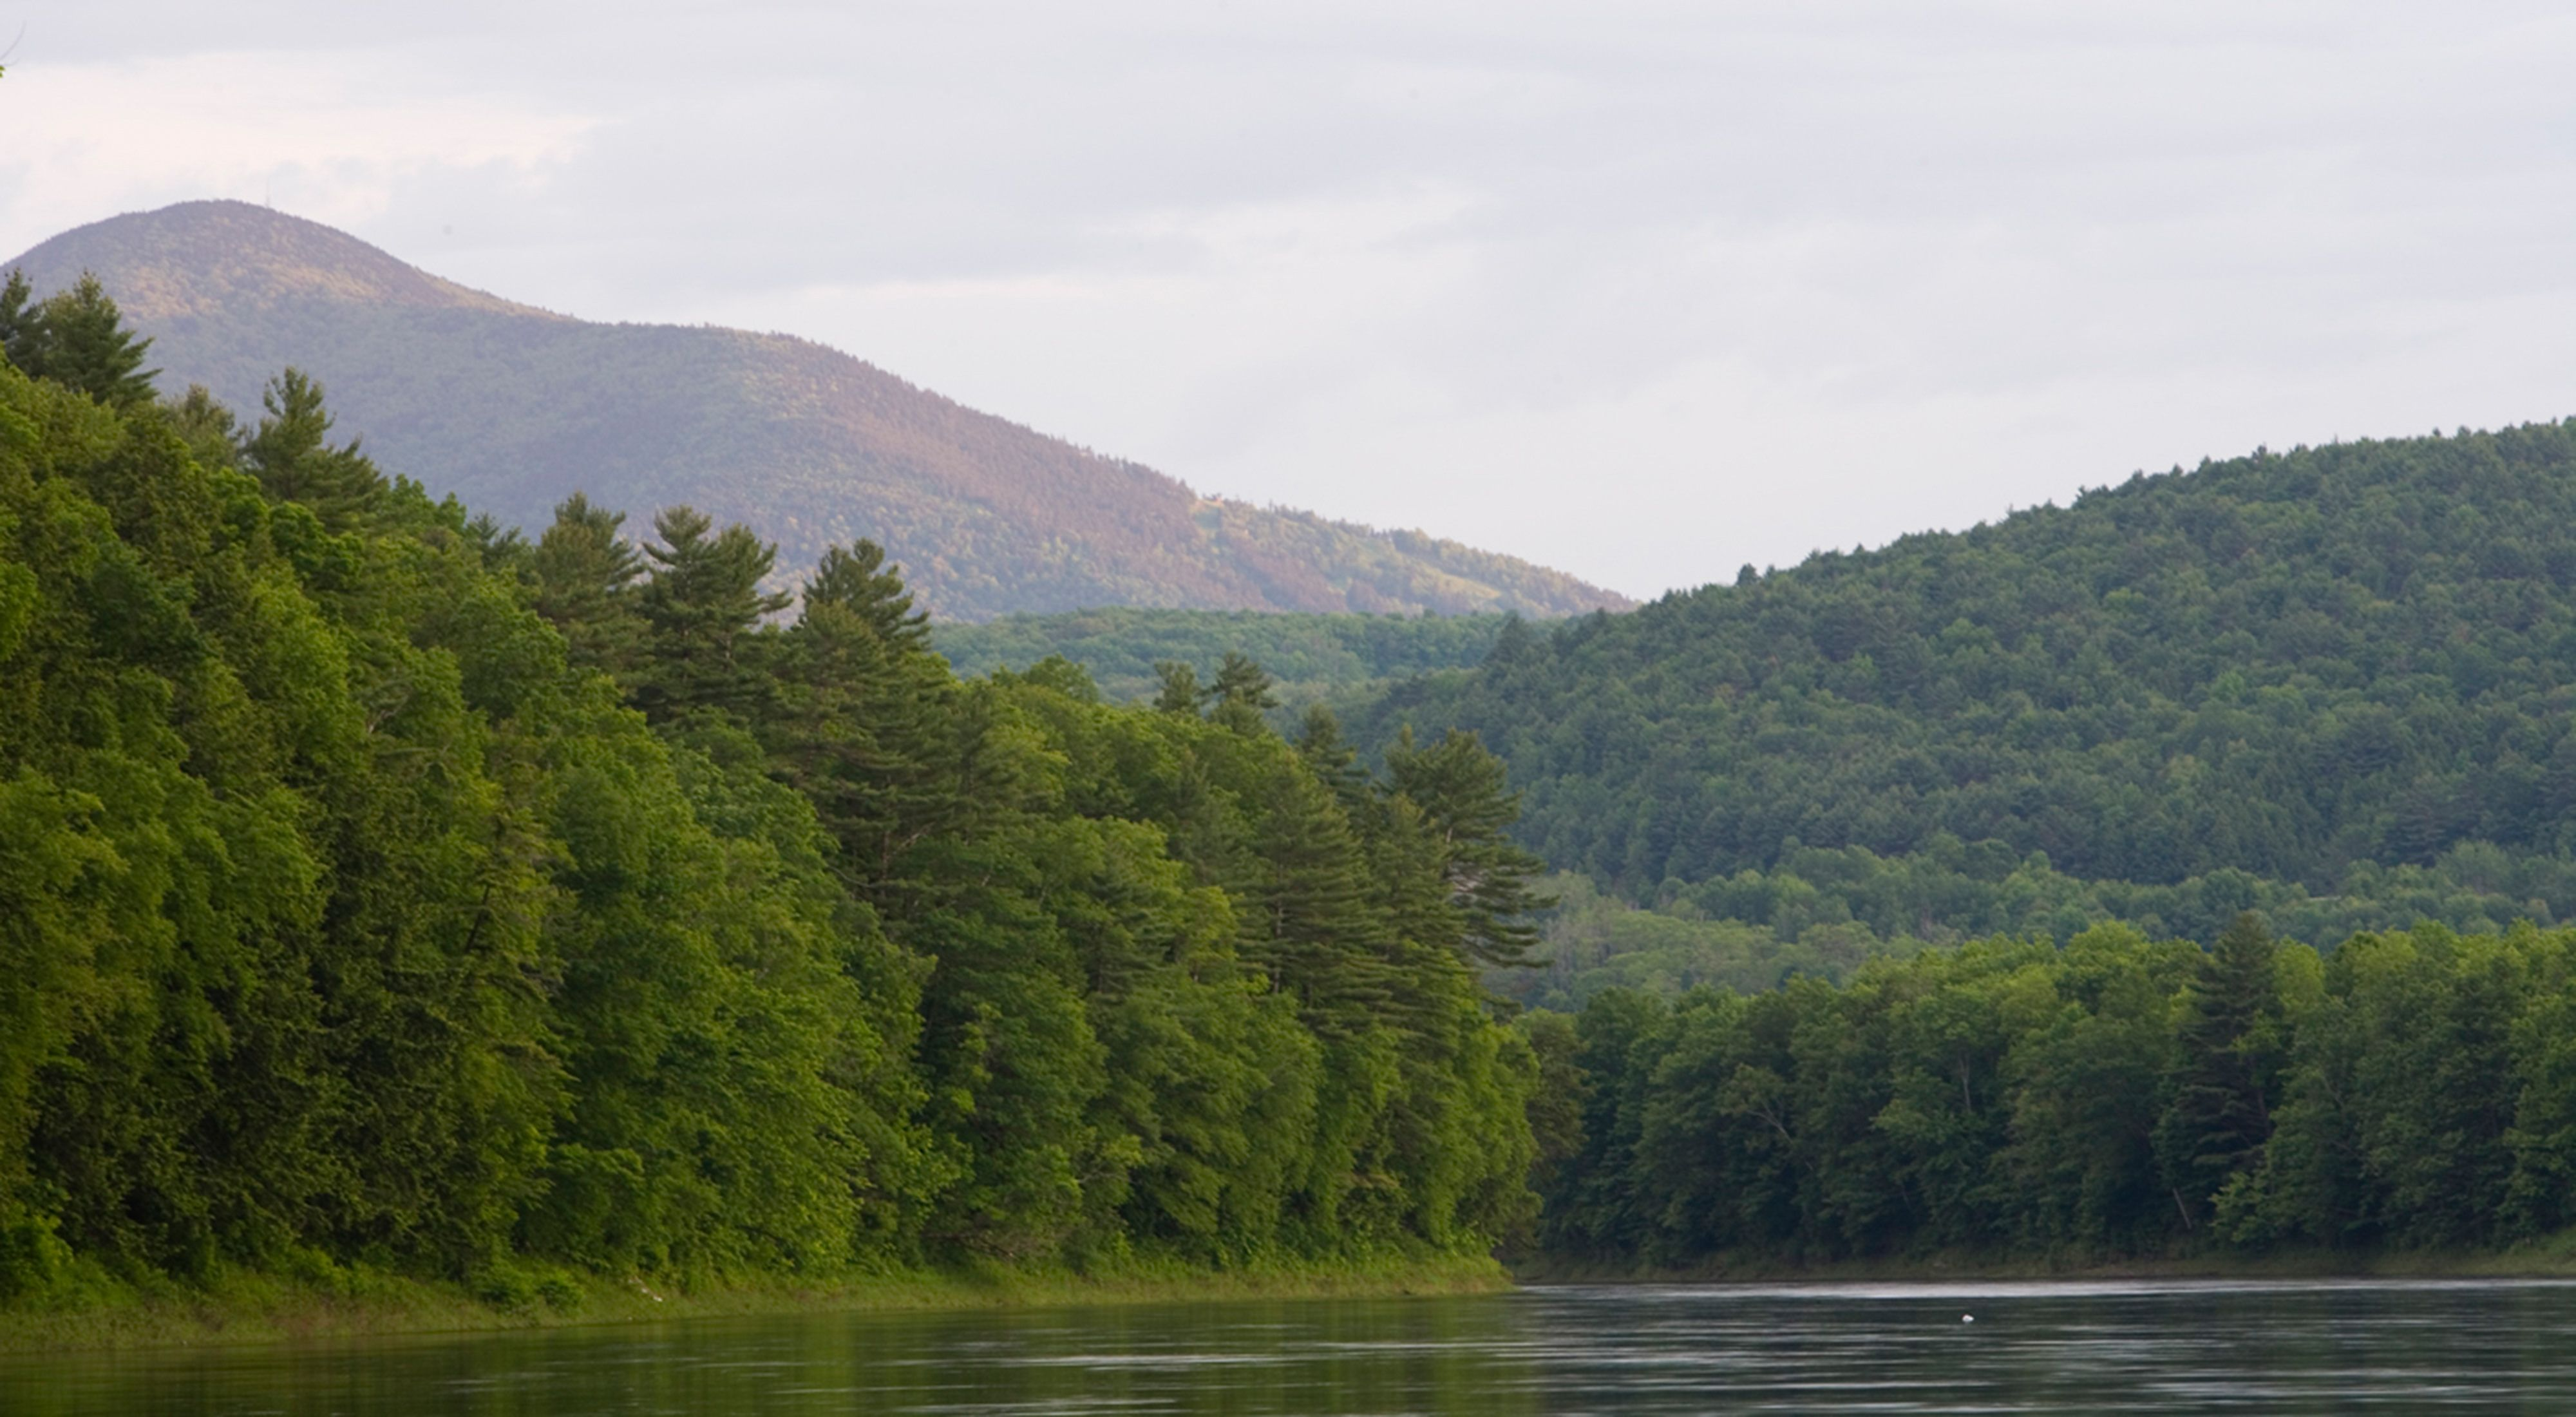 The Connecticut River flows past the Conservancy's Silverweed Seep Preserve in Plainfield, New Hampshire